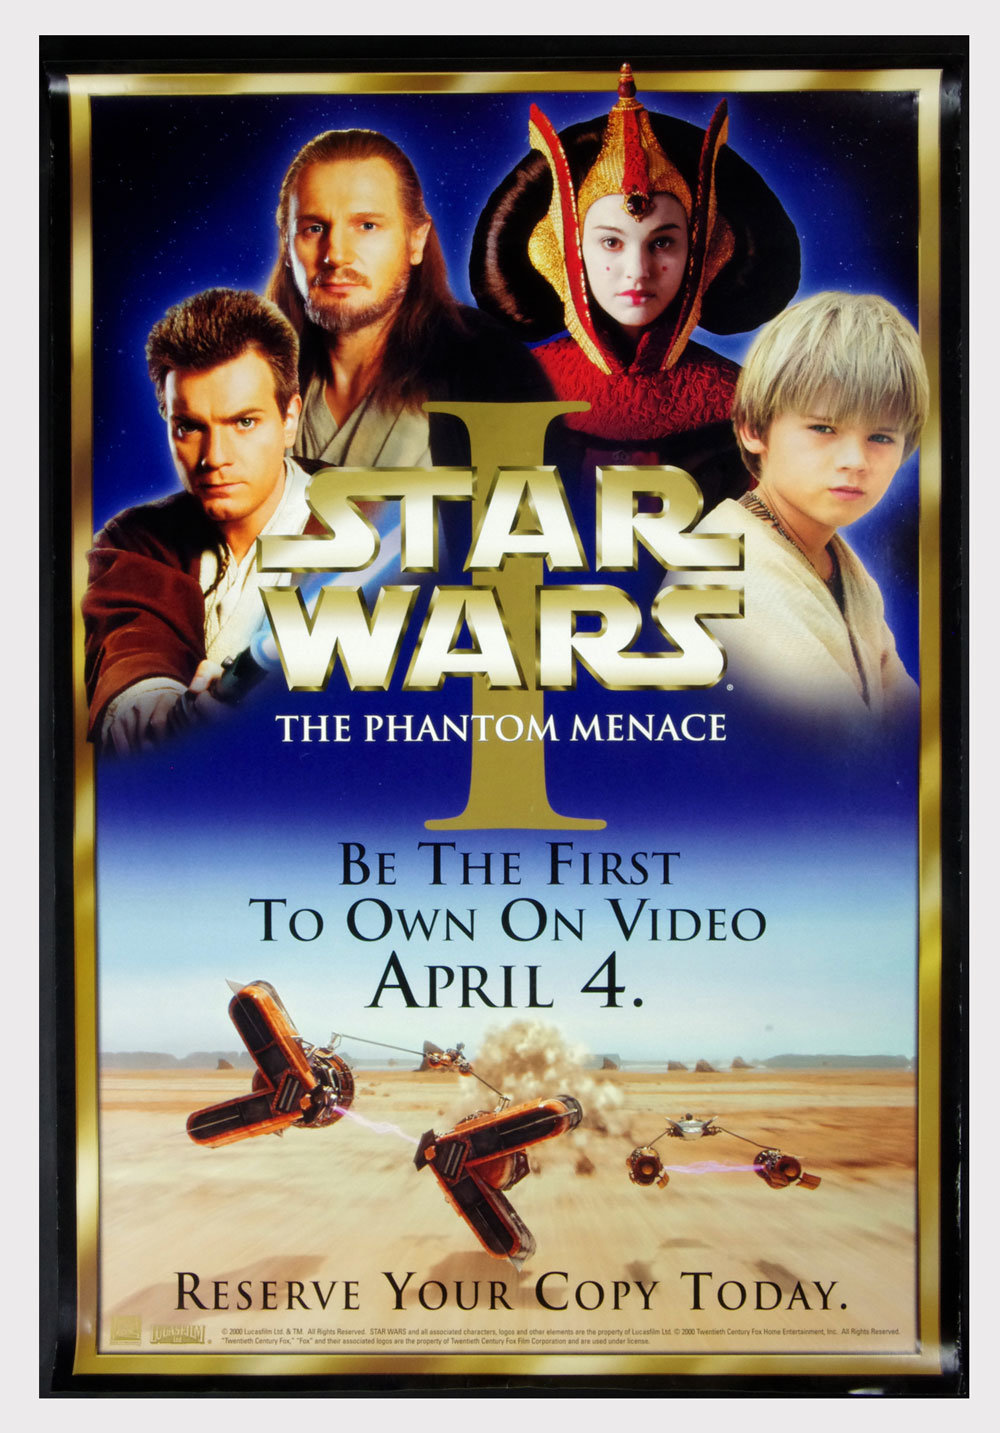 Star Wars Phantom Menace Poster 1999 Home Video 2000 Poster 27 x 40